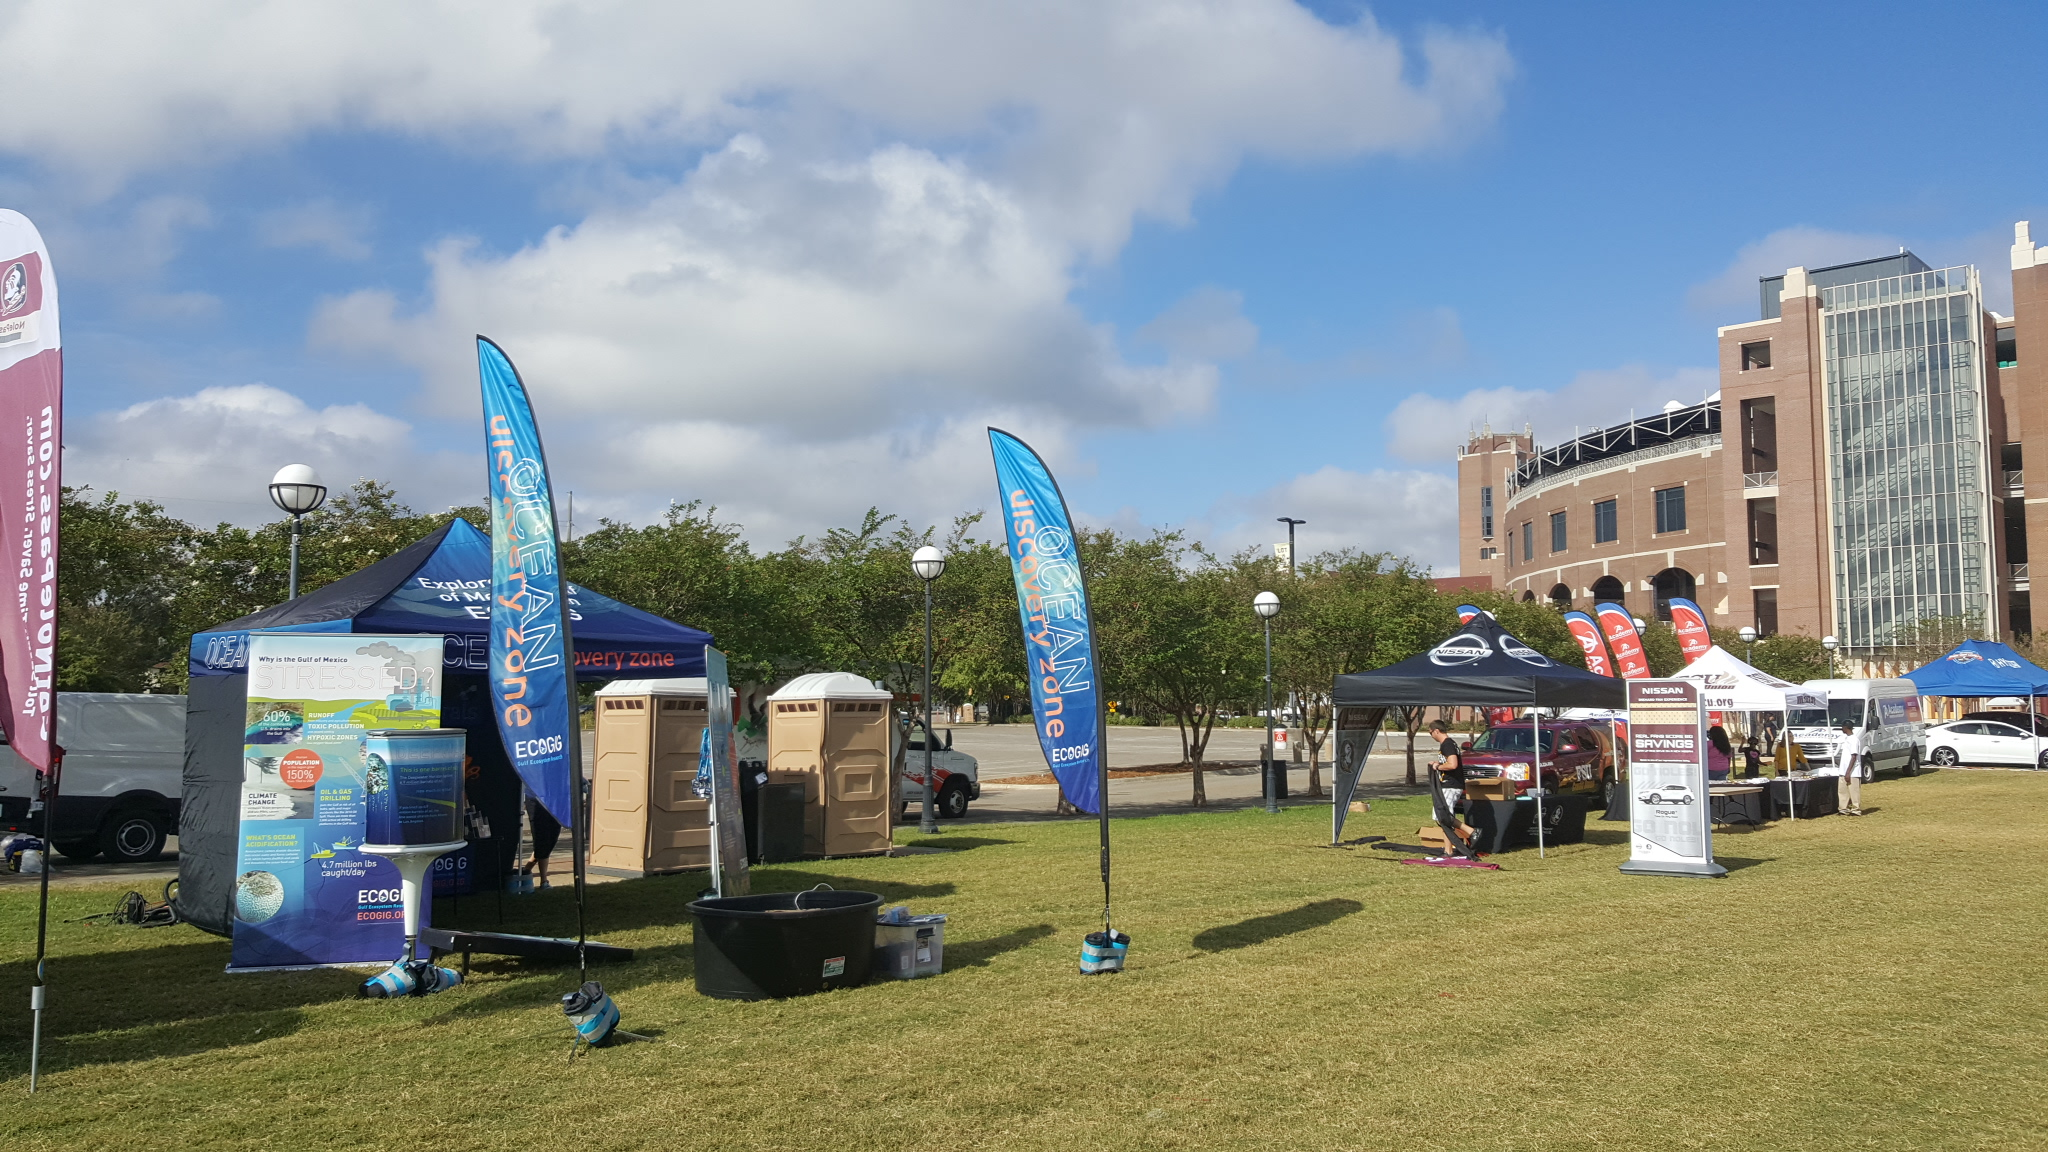 <div style='color:#000000;'><br /><br /><h2>The Ocean Discovery Zone set up in front of Doak Campbell stadium in Tallahassee, FL- October 2016</h2>(c) ECOGIG</div>